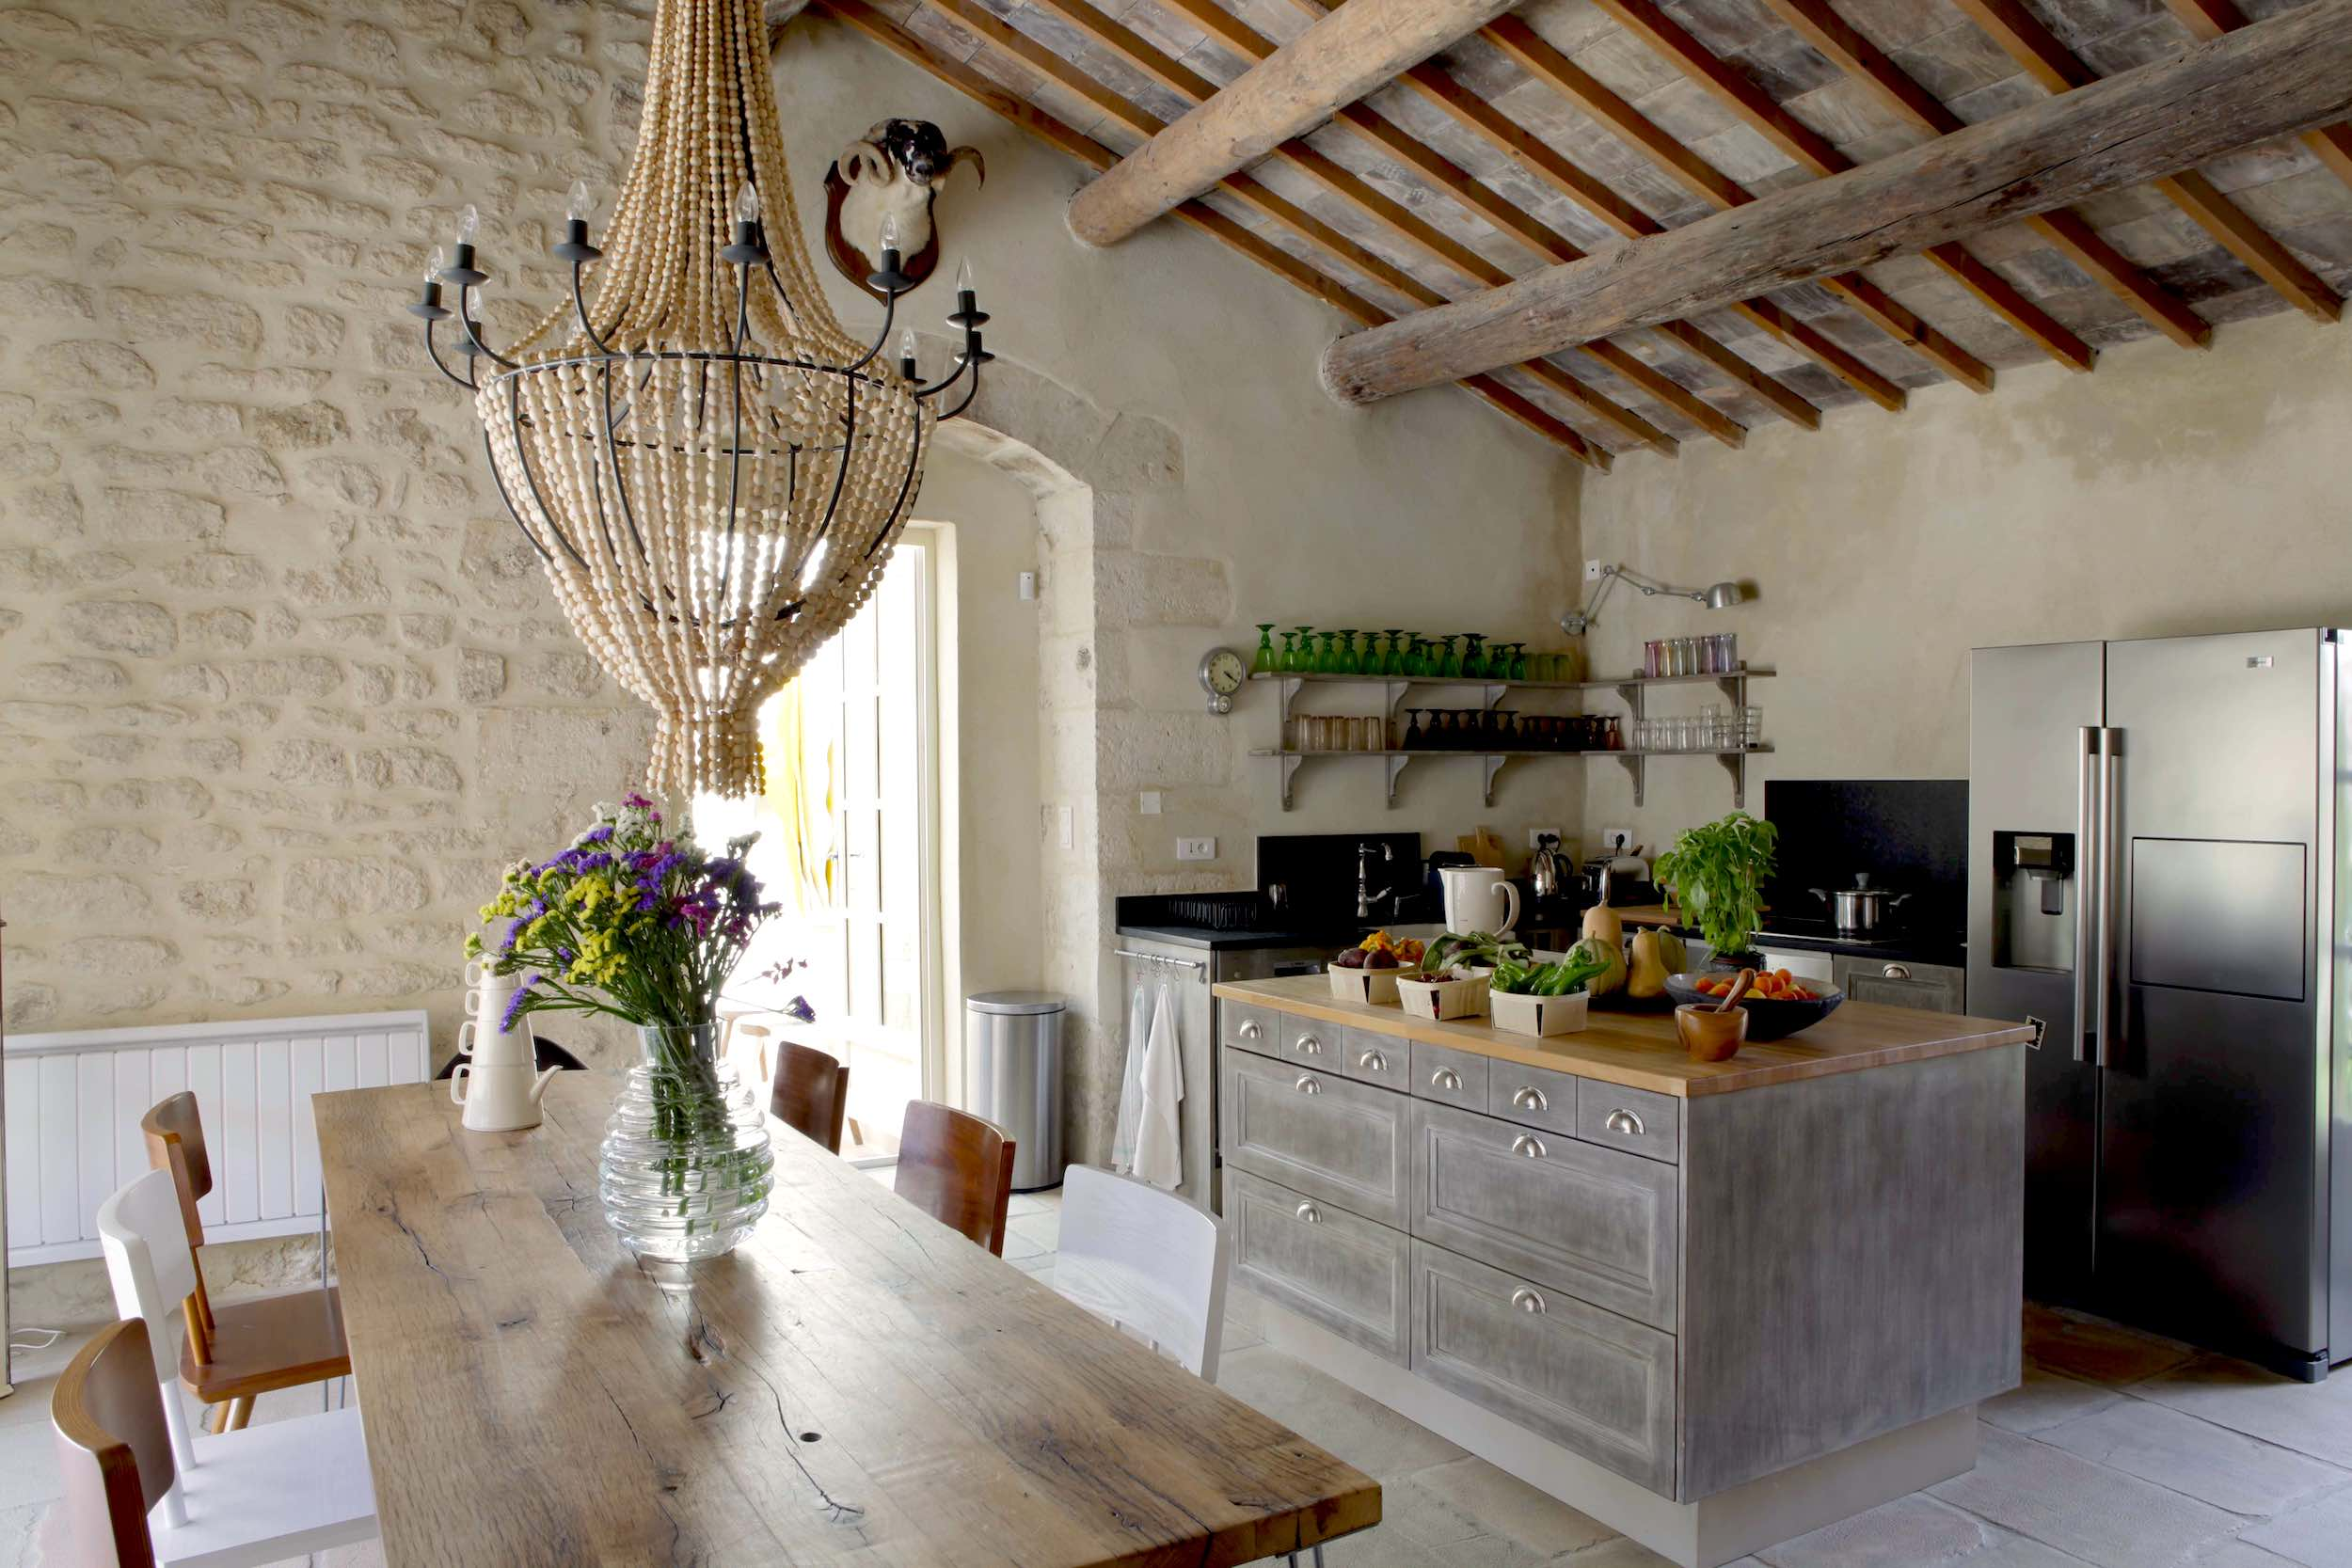 Uzès – Avignon, magnificent demeure, village with amenities, 375m2 living space, terraces, heated pool.